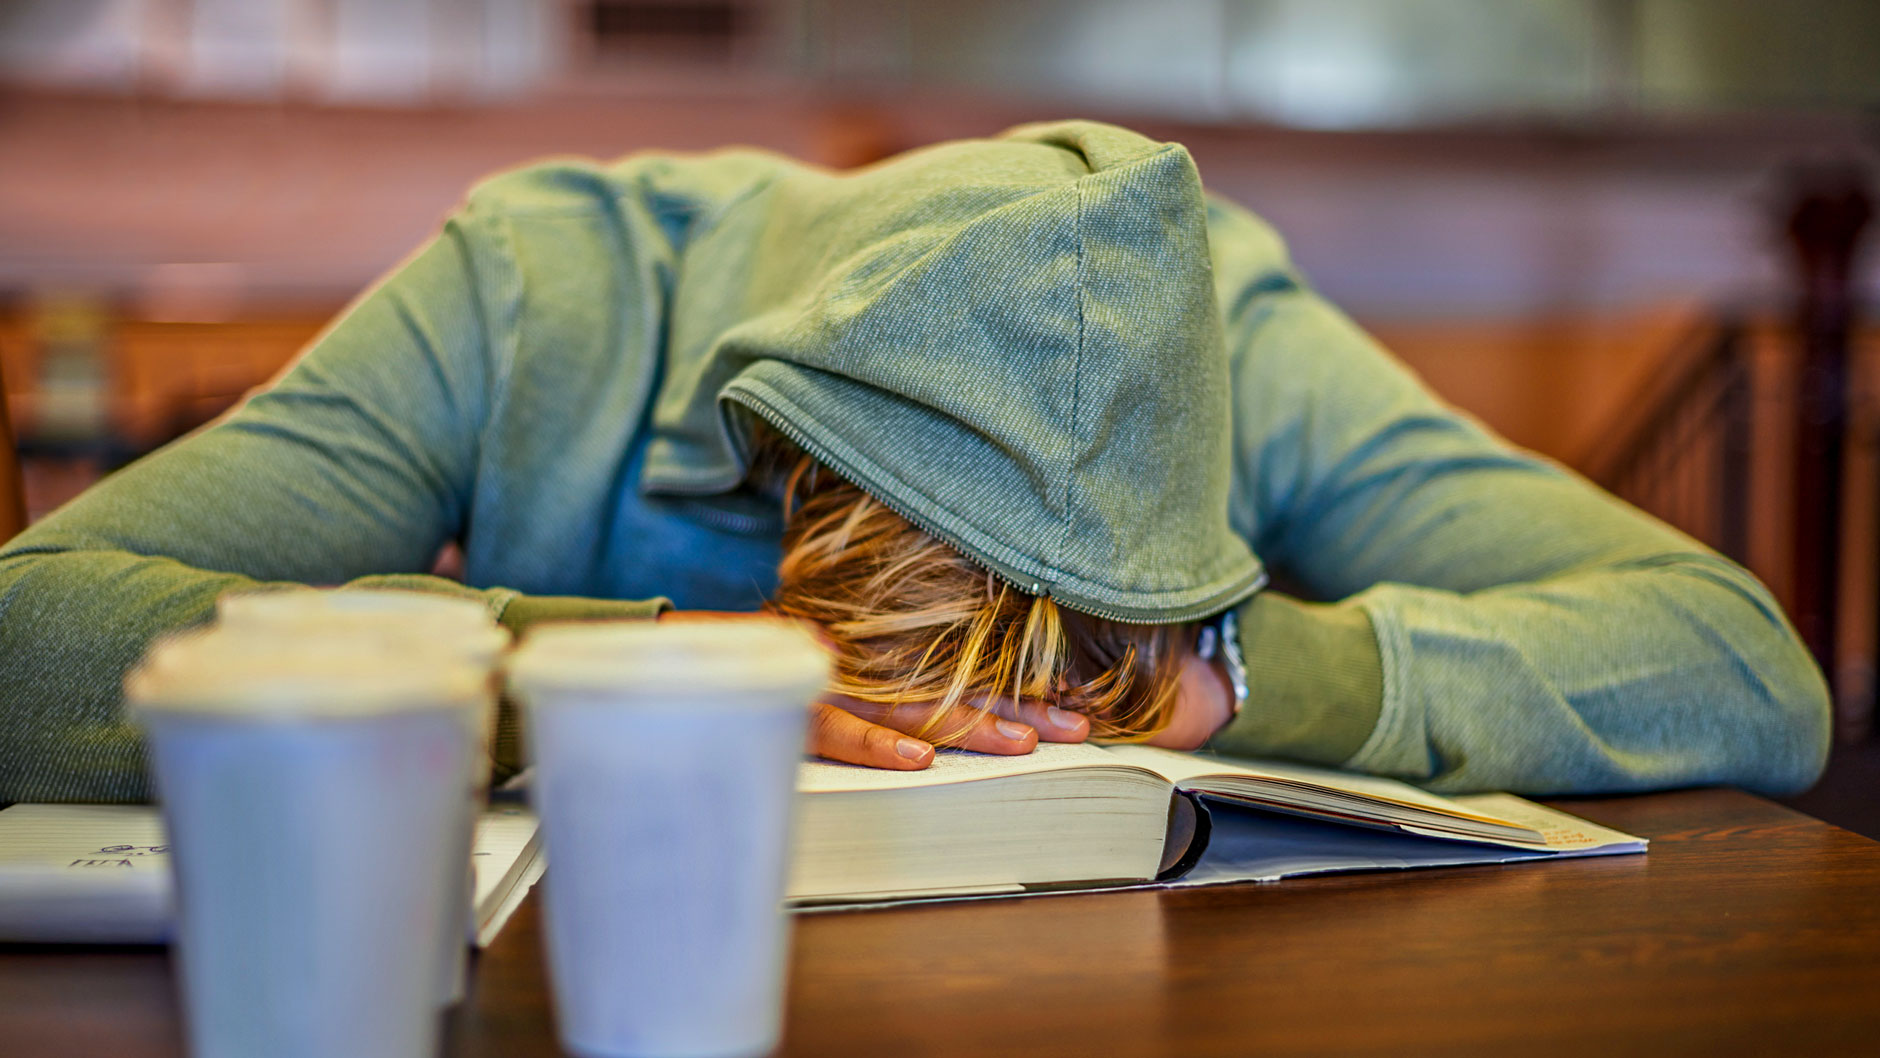 student overloaded from schoolwork